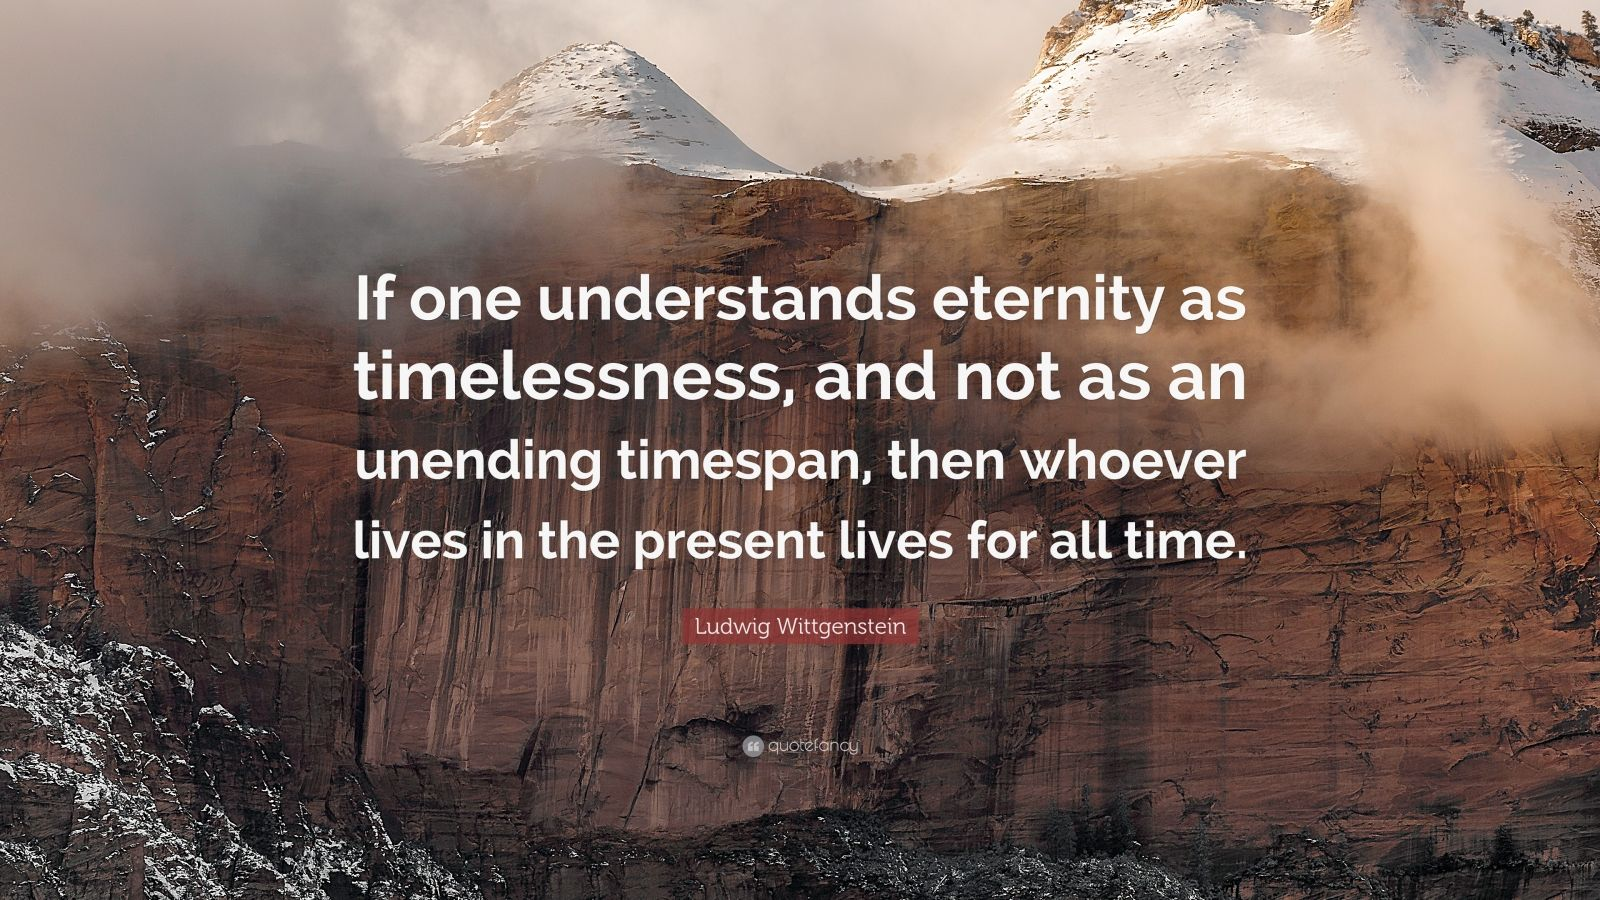 """Ludwig Wittgenstein Quote: """"If one understands eternity as timelessness, and not as an unending timespan, then whoever lives in the present lives for all time."""""""